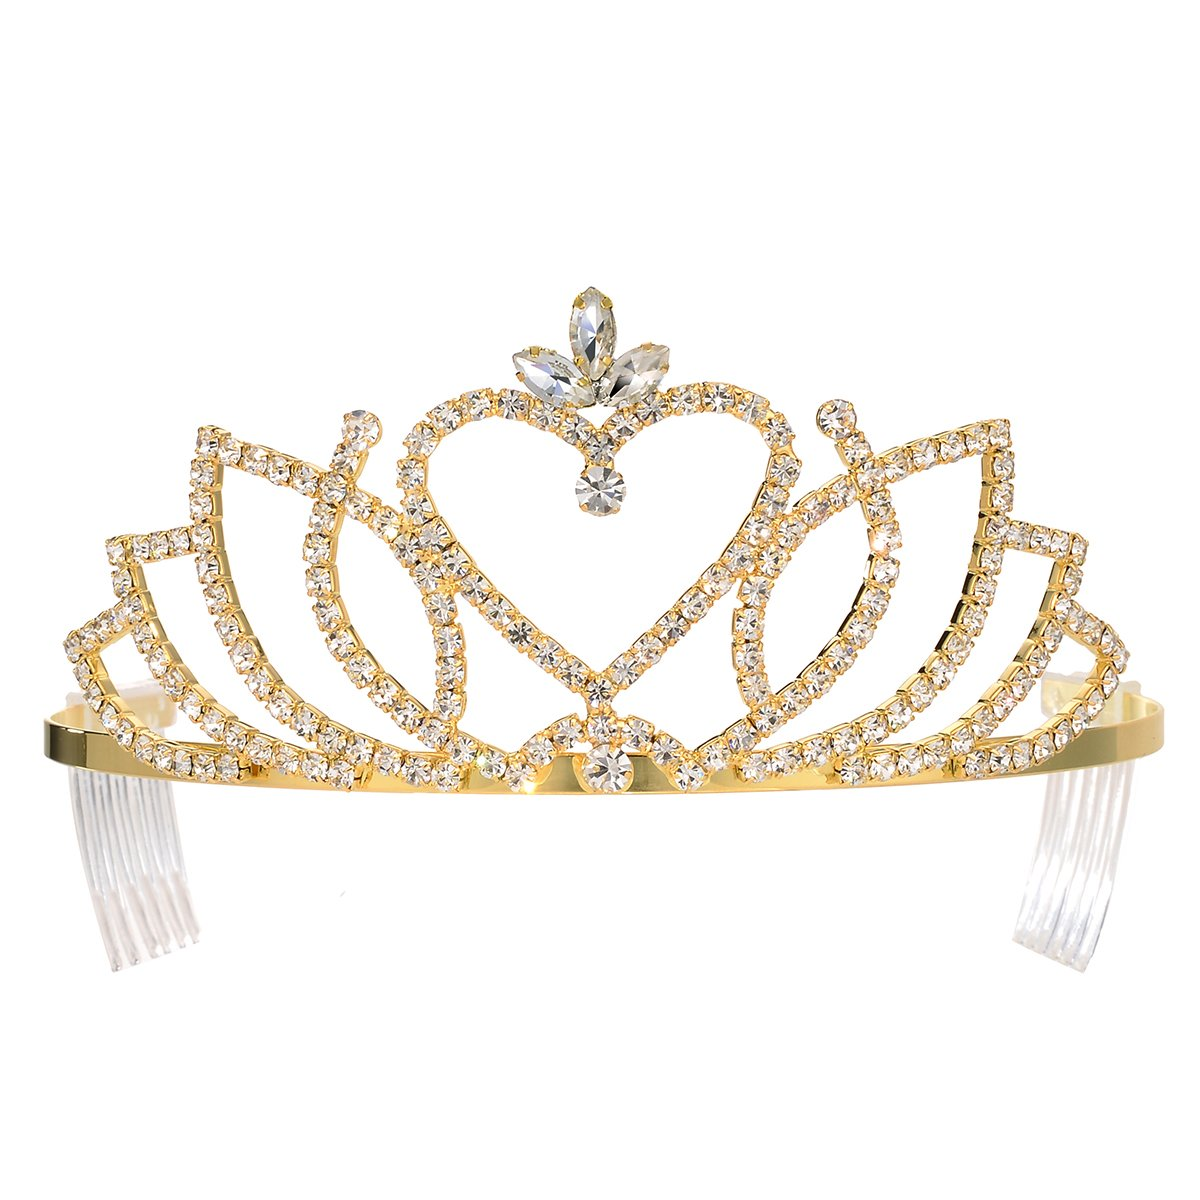 DcZeRong Gold Crown Princess Crown Gold Prom Crown Gold Queen Crowns Prom Tiaras Princess Tiaras